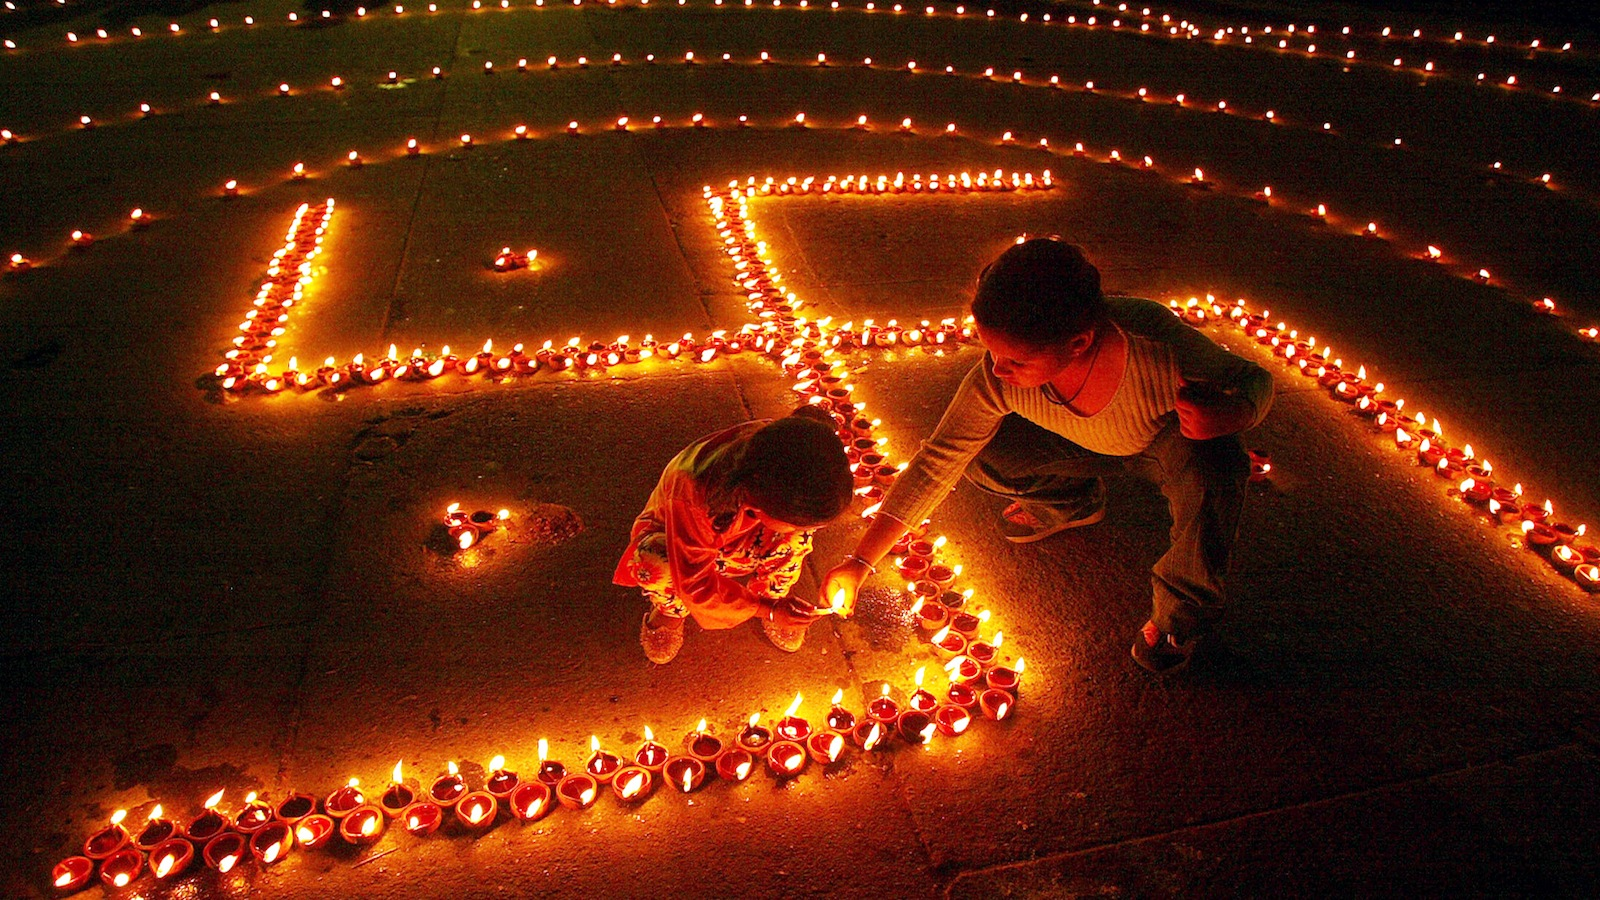 Children light lamps in the shape of Swastika, on the eve of Hindu festival of Diwali, in the northern city of Chandigarh, November 11, 2004. According to Hindu mythology, Swastika is the sign of prosperity. People decorate their homes with lights during the biggest Hindu festival of lights, Diwali that will be celebrated on November 12 this year.